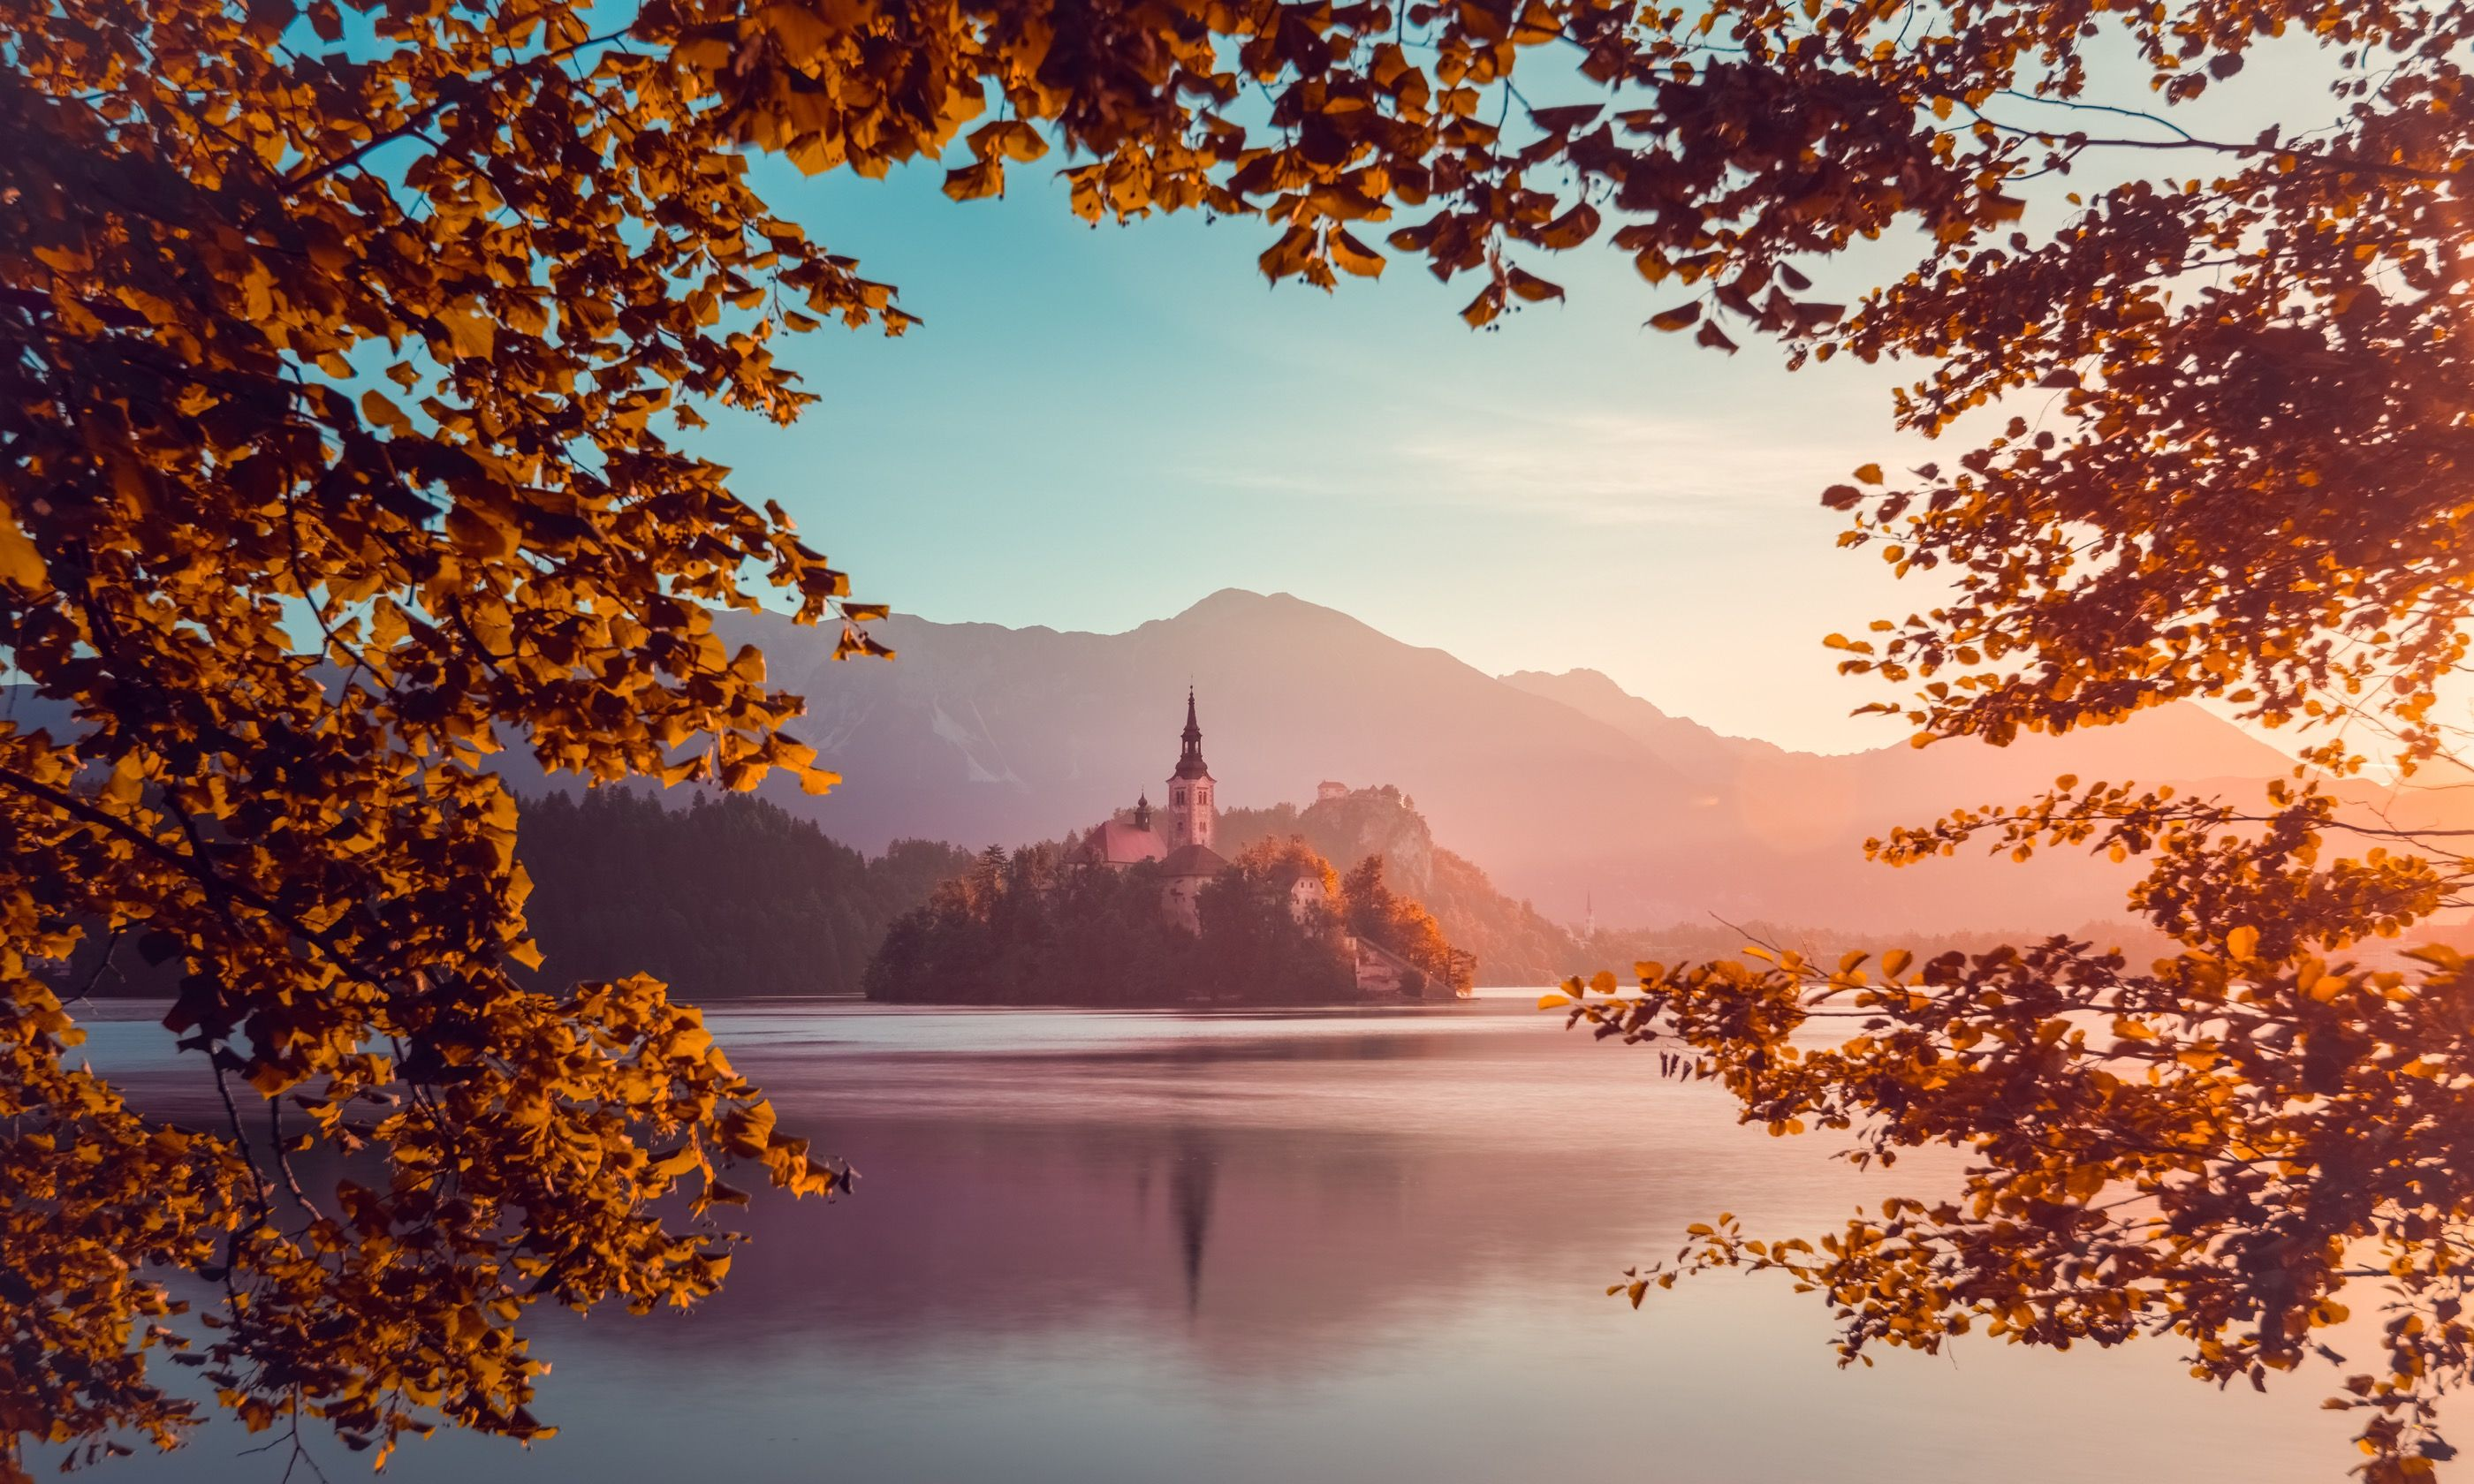 Church of the Assumption on Lake Bled (Dreamstime)